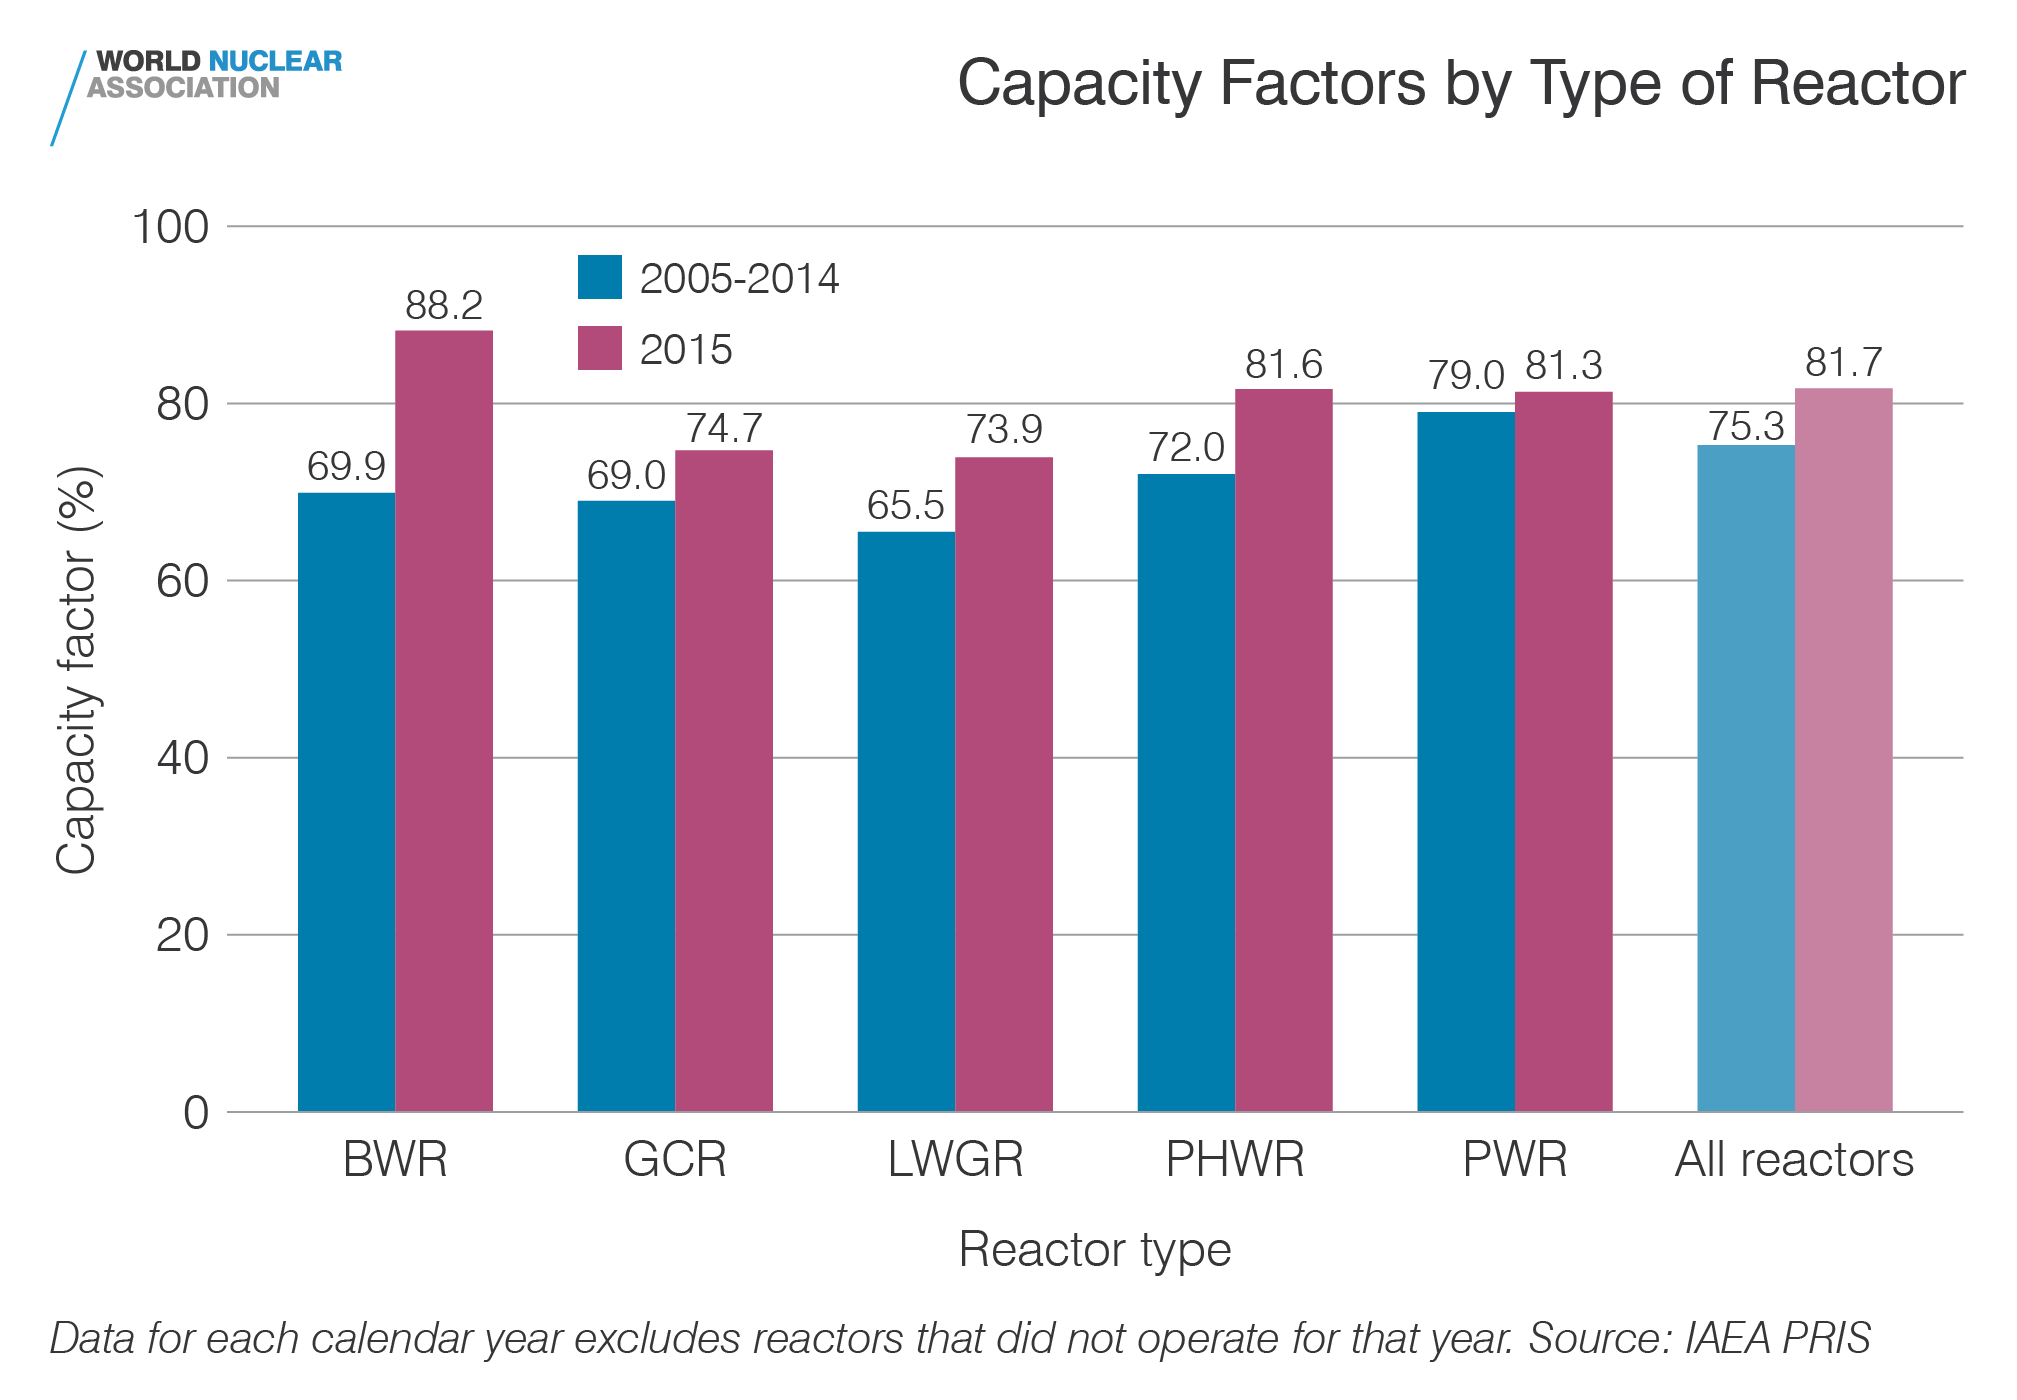 Capacity factors by type of reactor